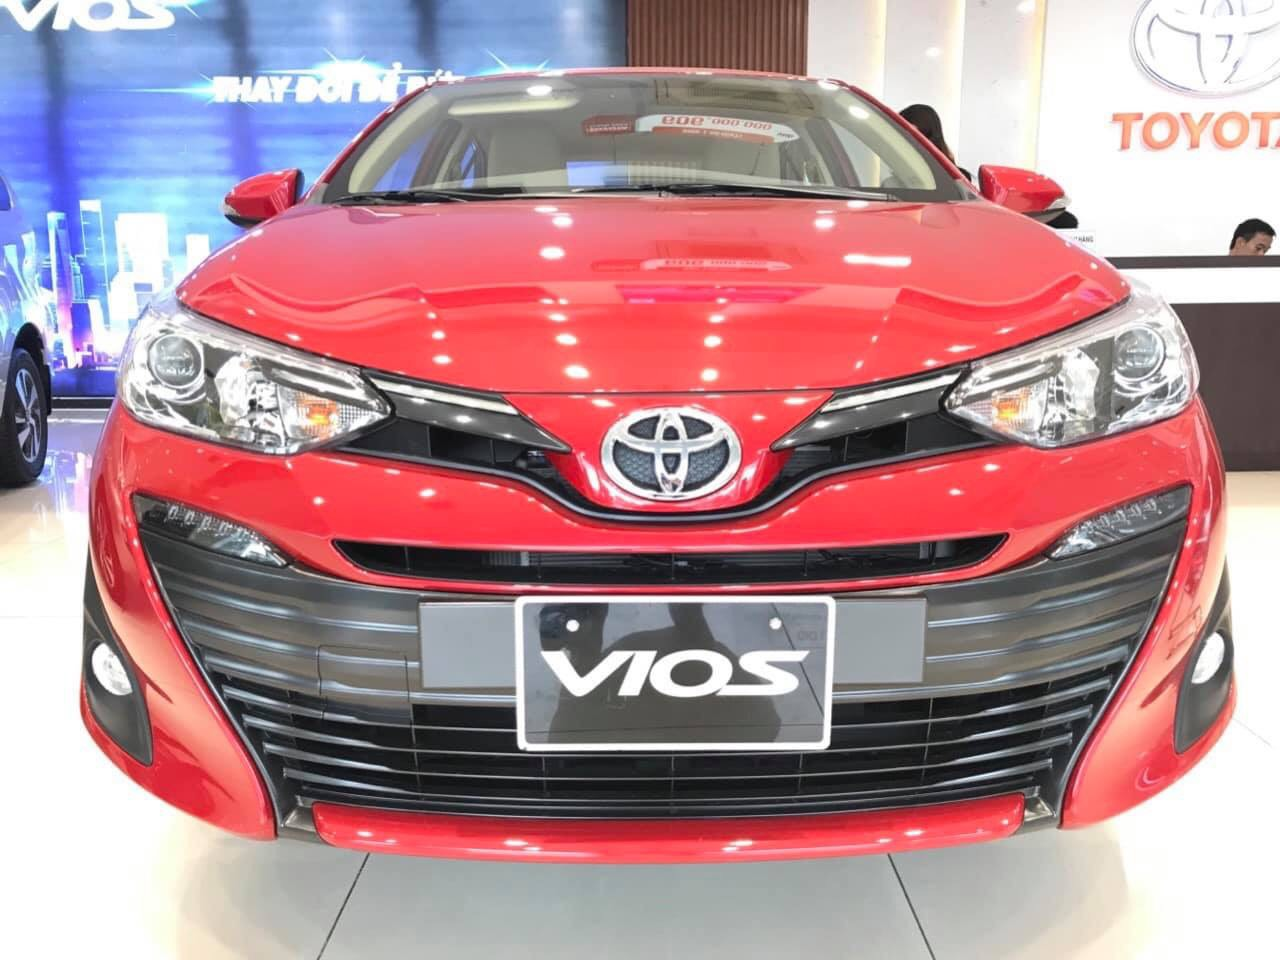 toyota vios 2020 anh 6